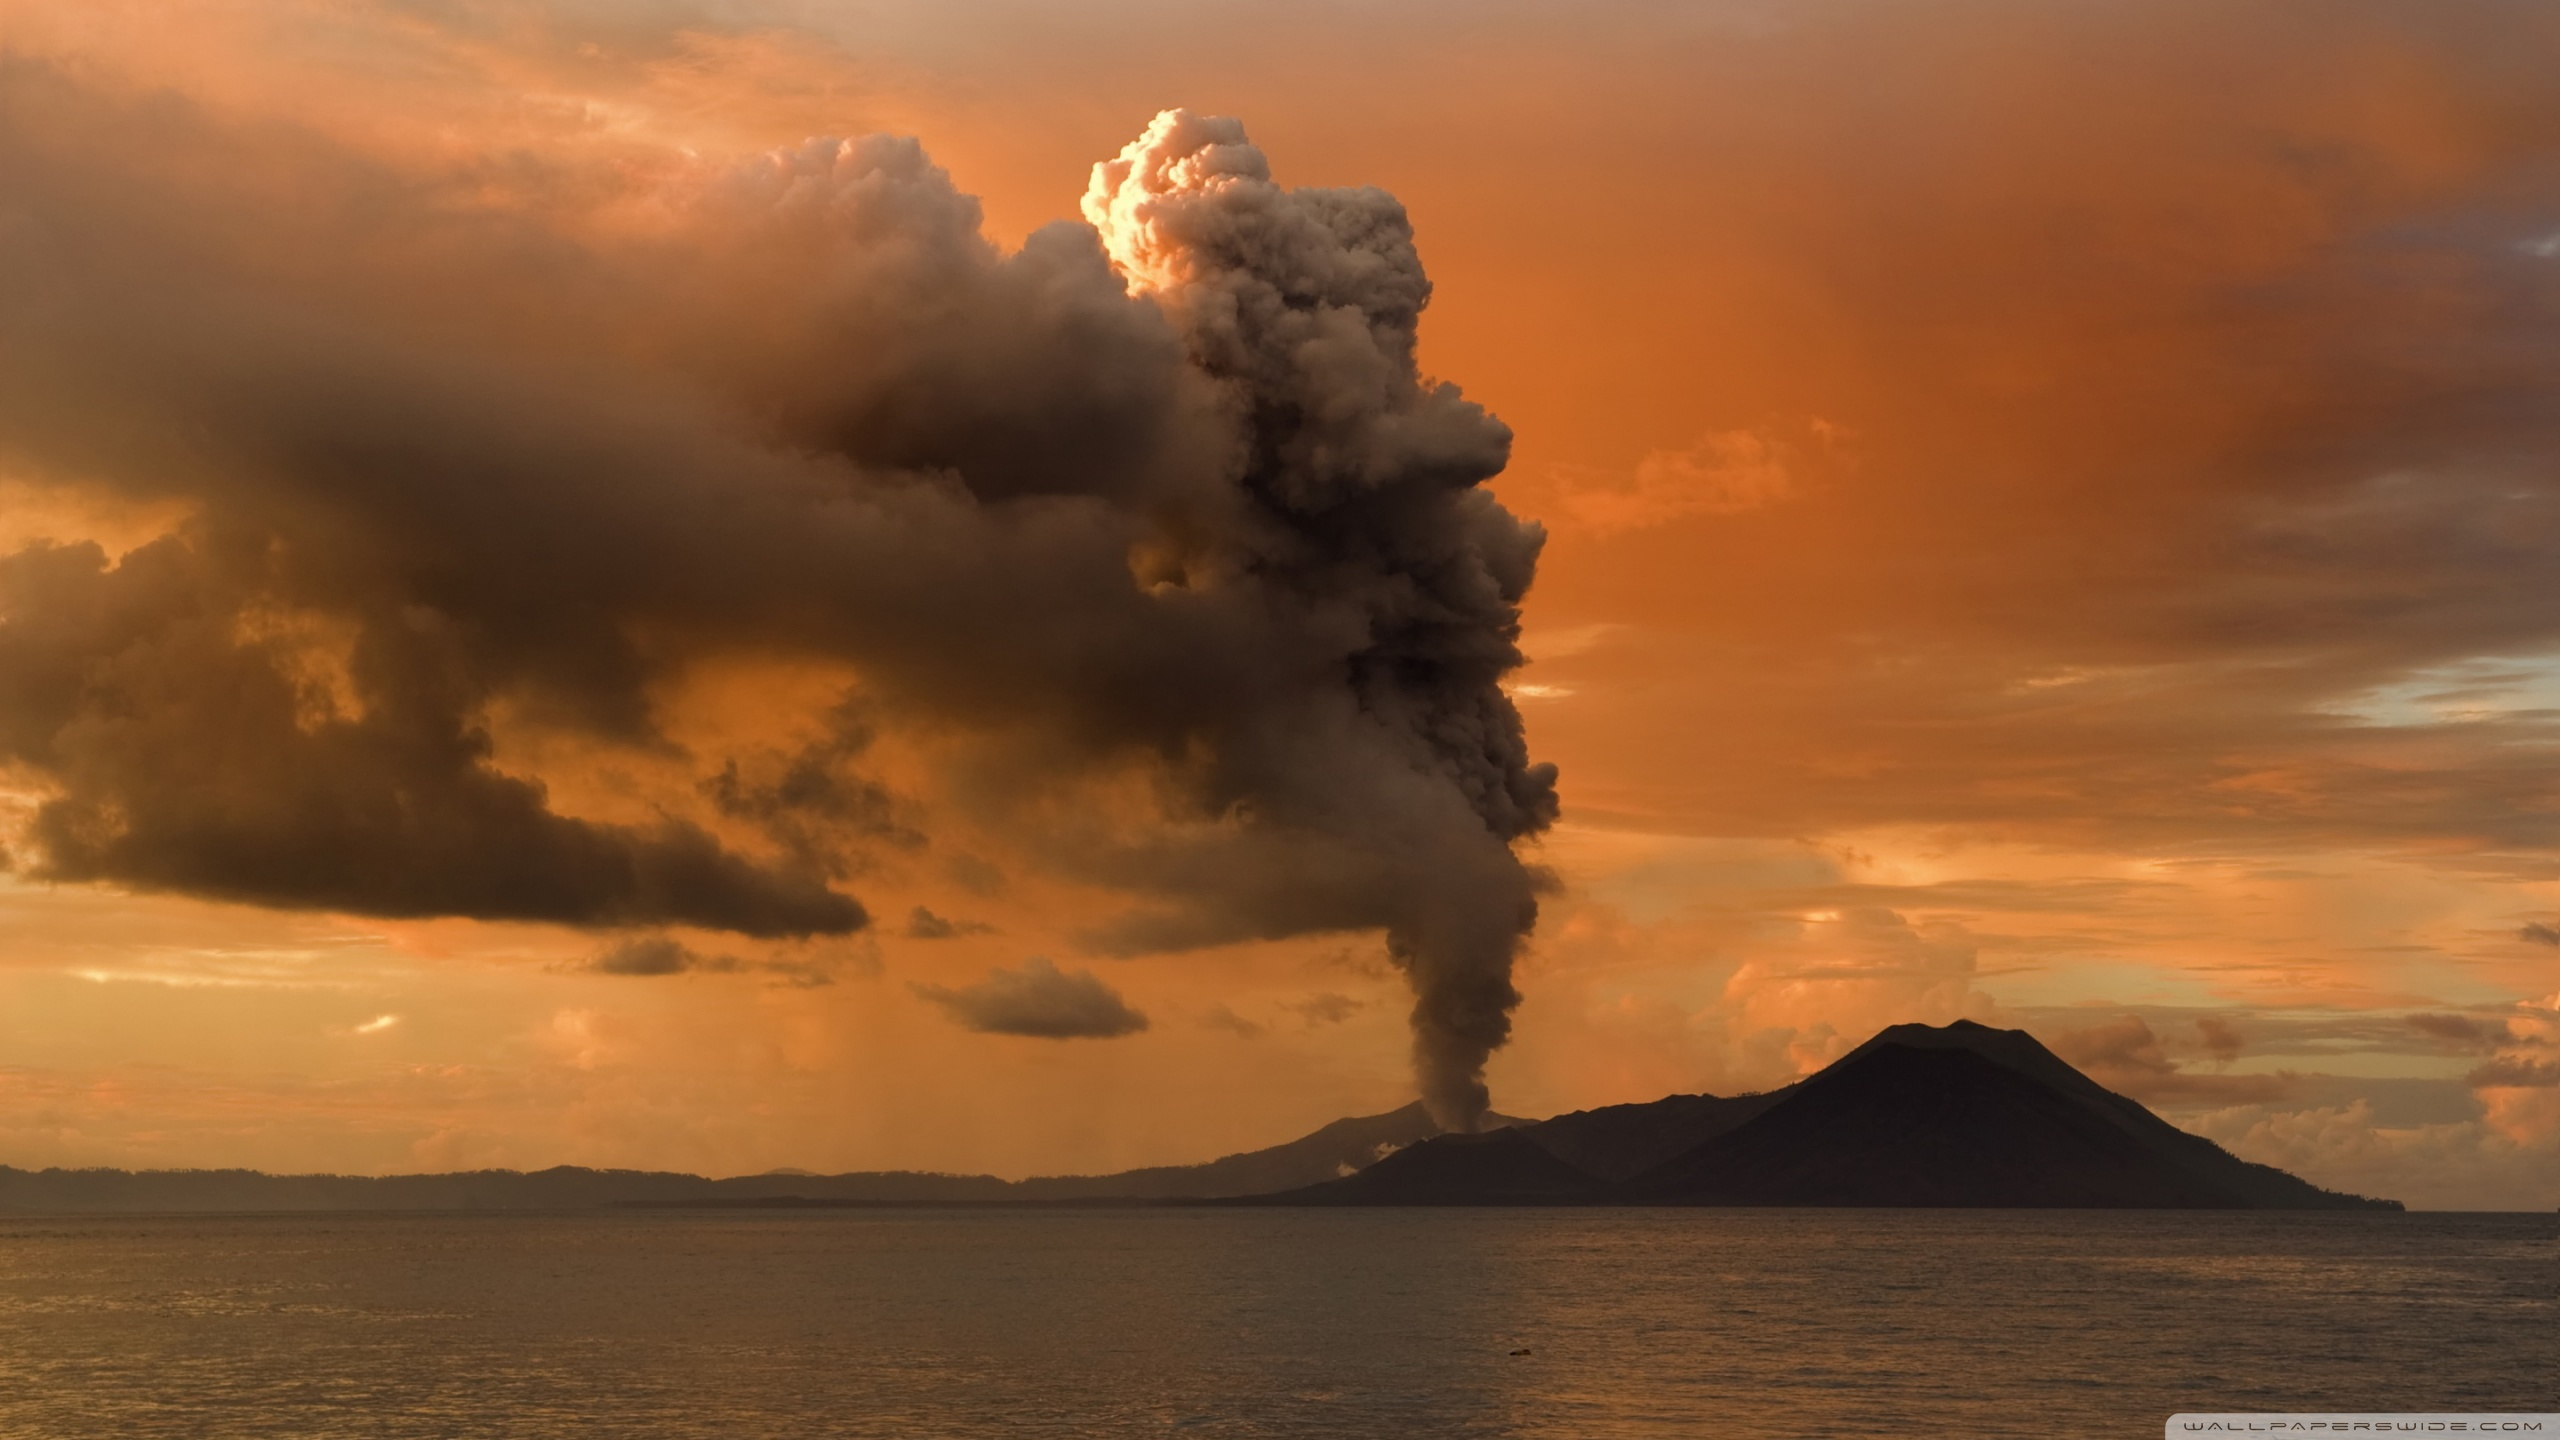 Volcanic Eruption in Papua New Guinea 4K HD Desktop Wallpaper 2560x1440